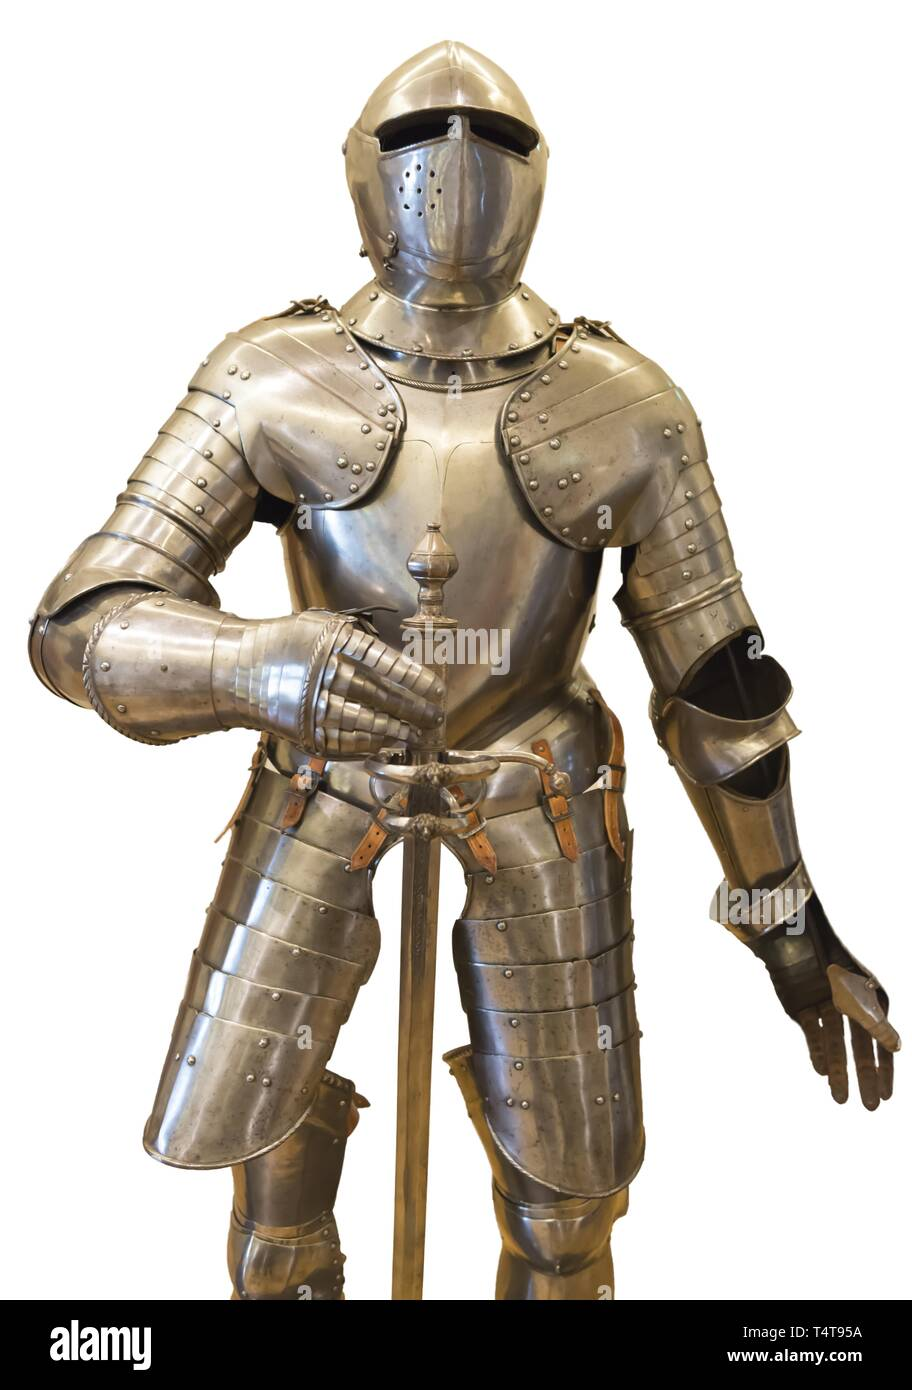 Suit of Armor on White Background - Stock Image